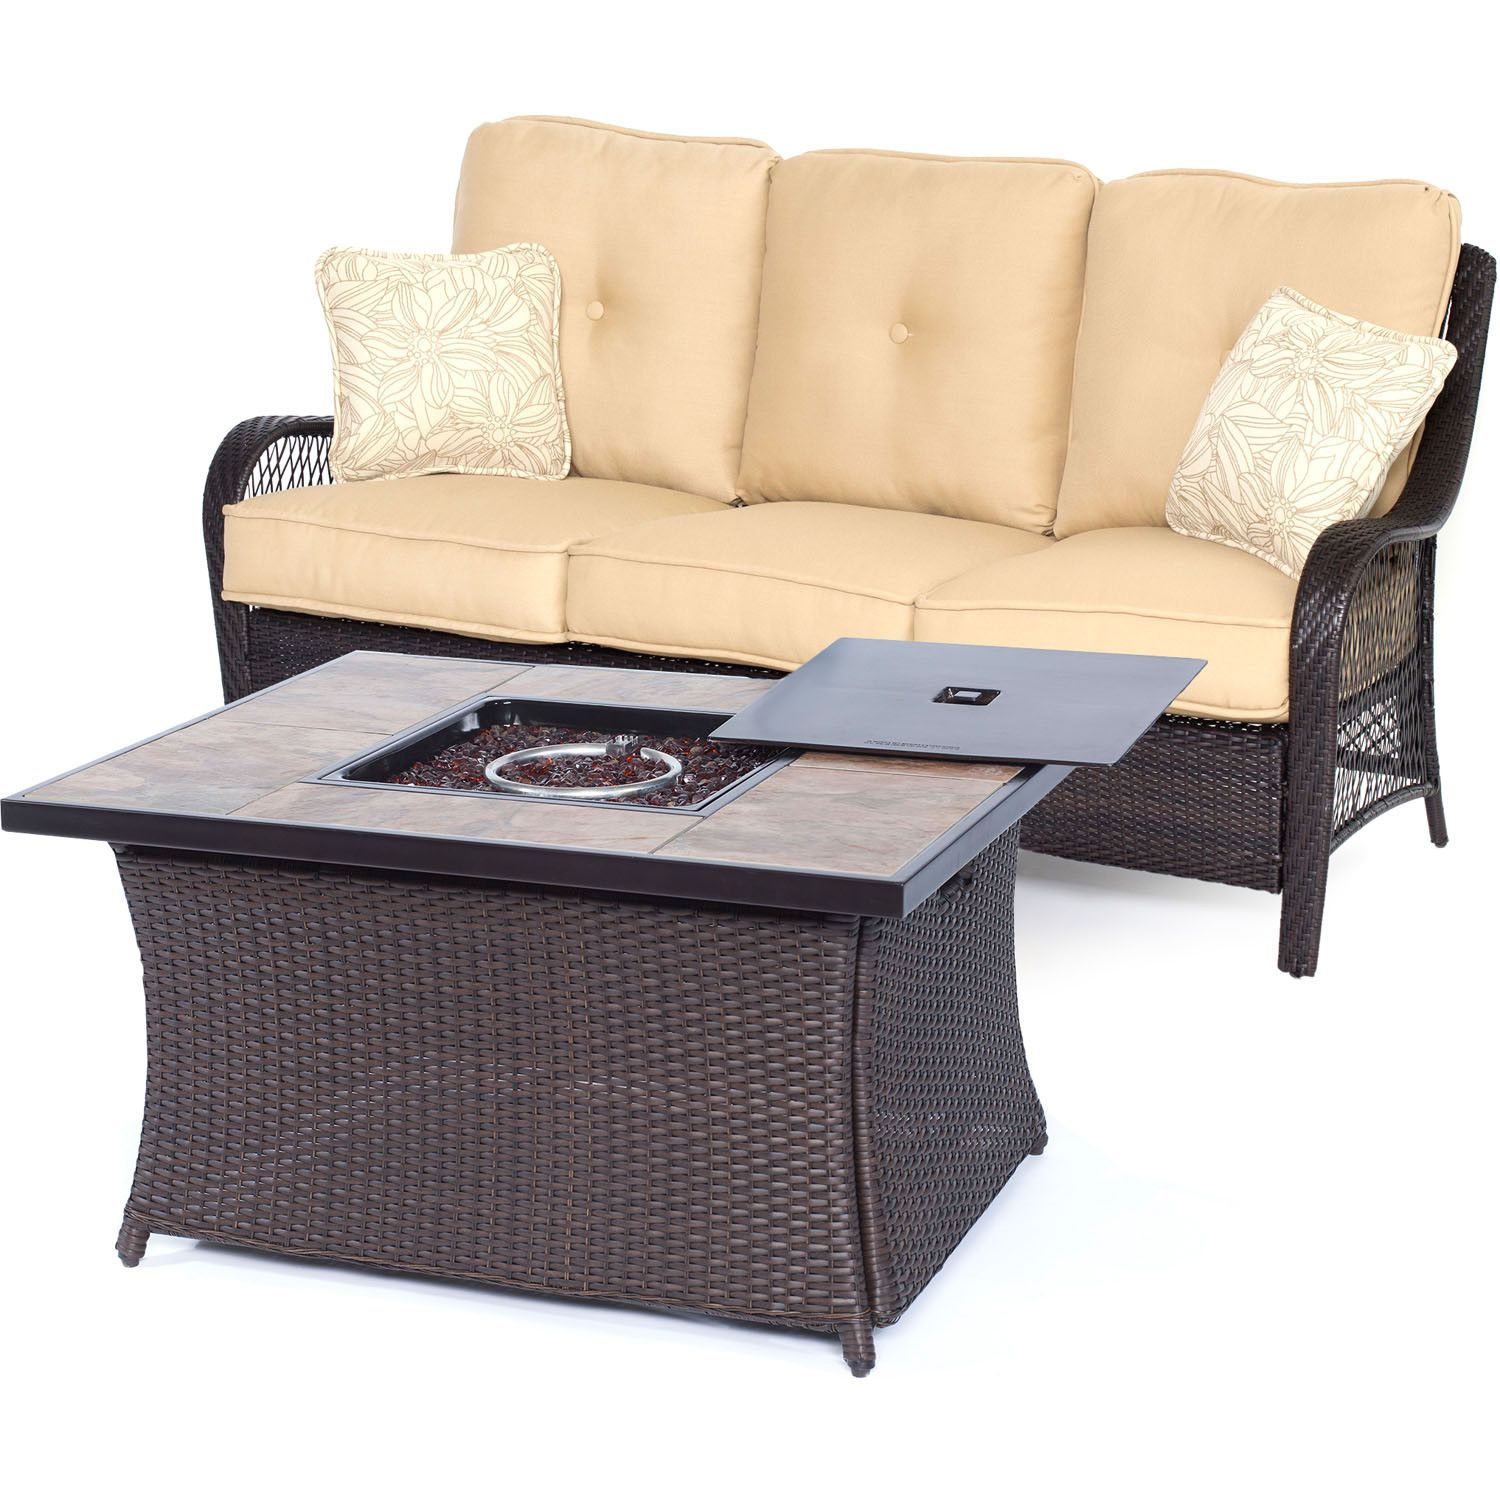 Orleans2pc FP Seating Set Sofa Fire Pit Coffee Table w